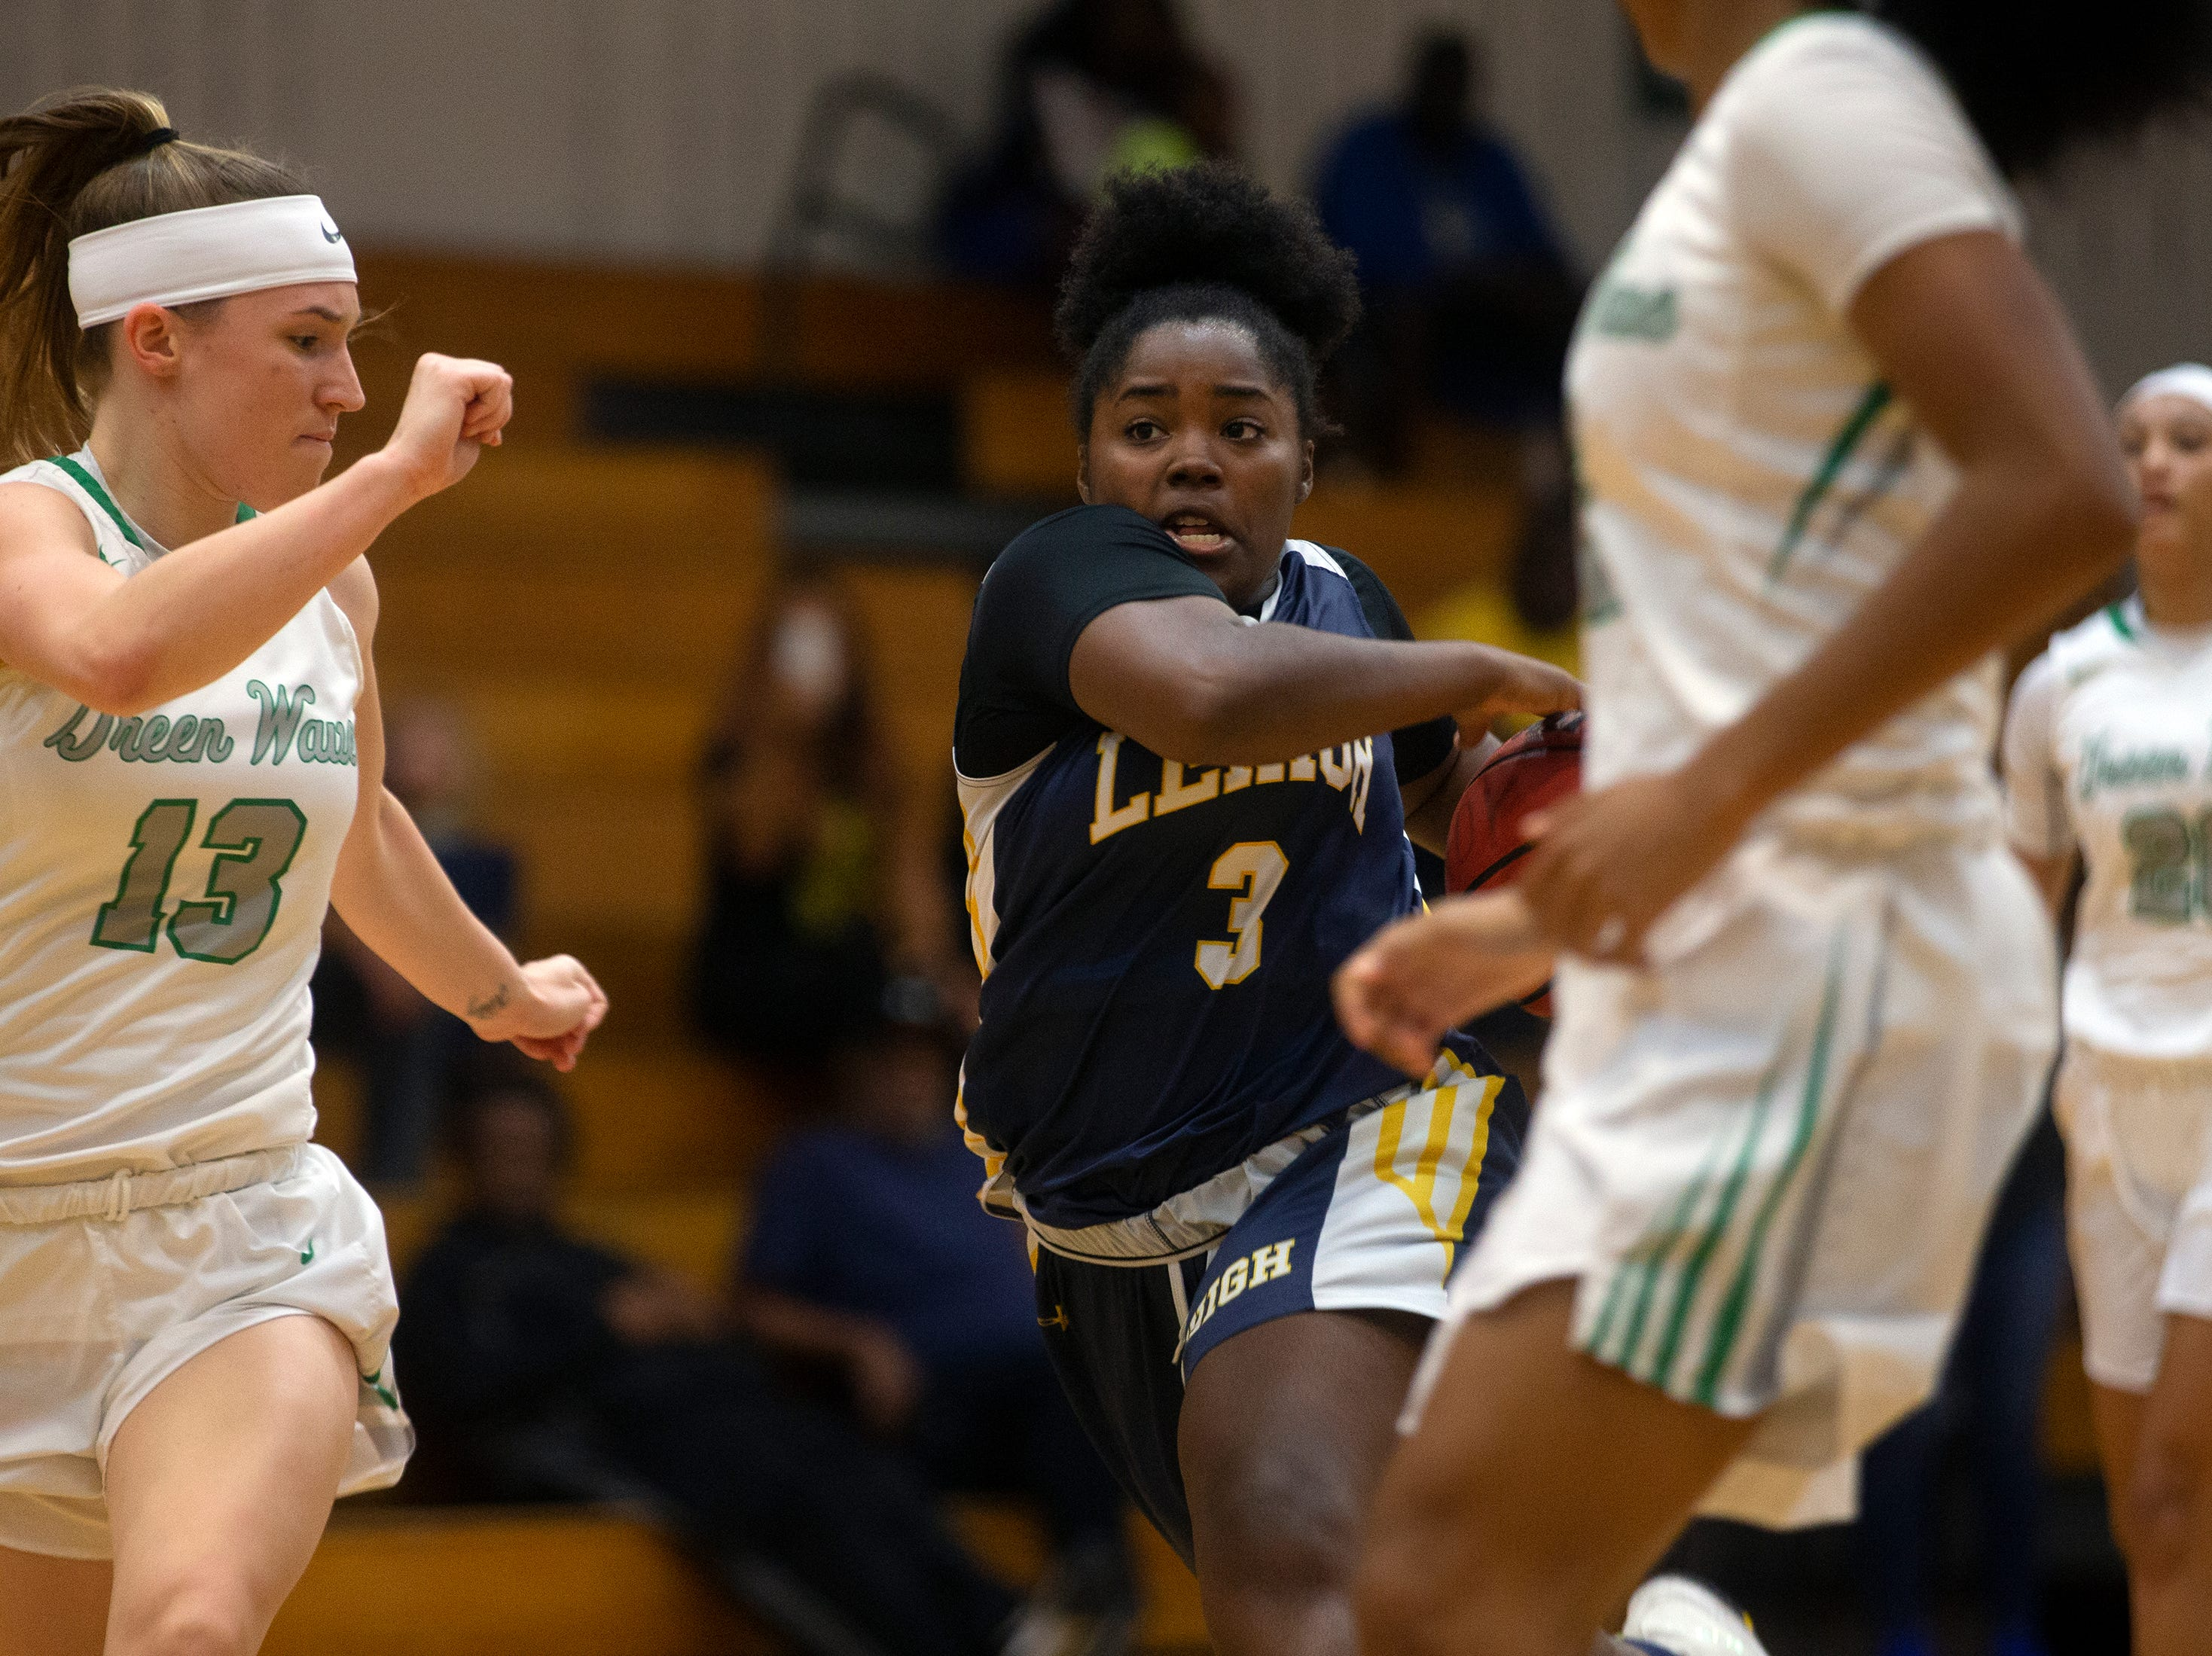 Lehigh's Zaniyah Thomas drives down the lane against Fort Myers, Friday, Feb. 8, 2019, at Dunbar High School in Fort Myers.